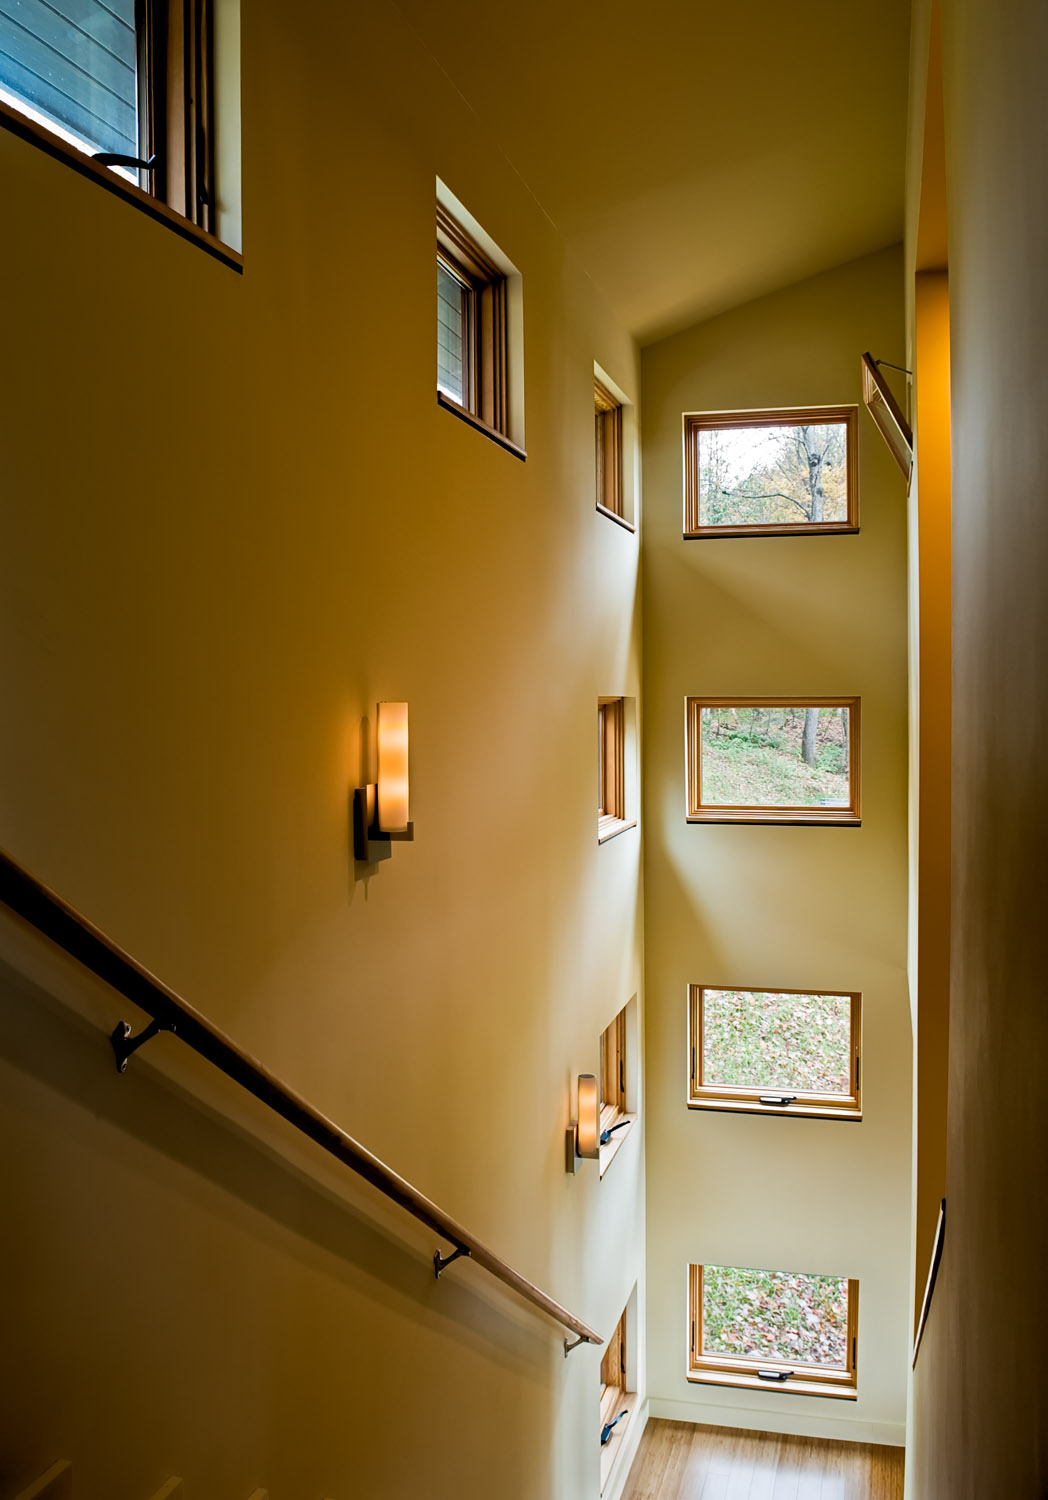 11 From top of stairs looking down.jpg